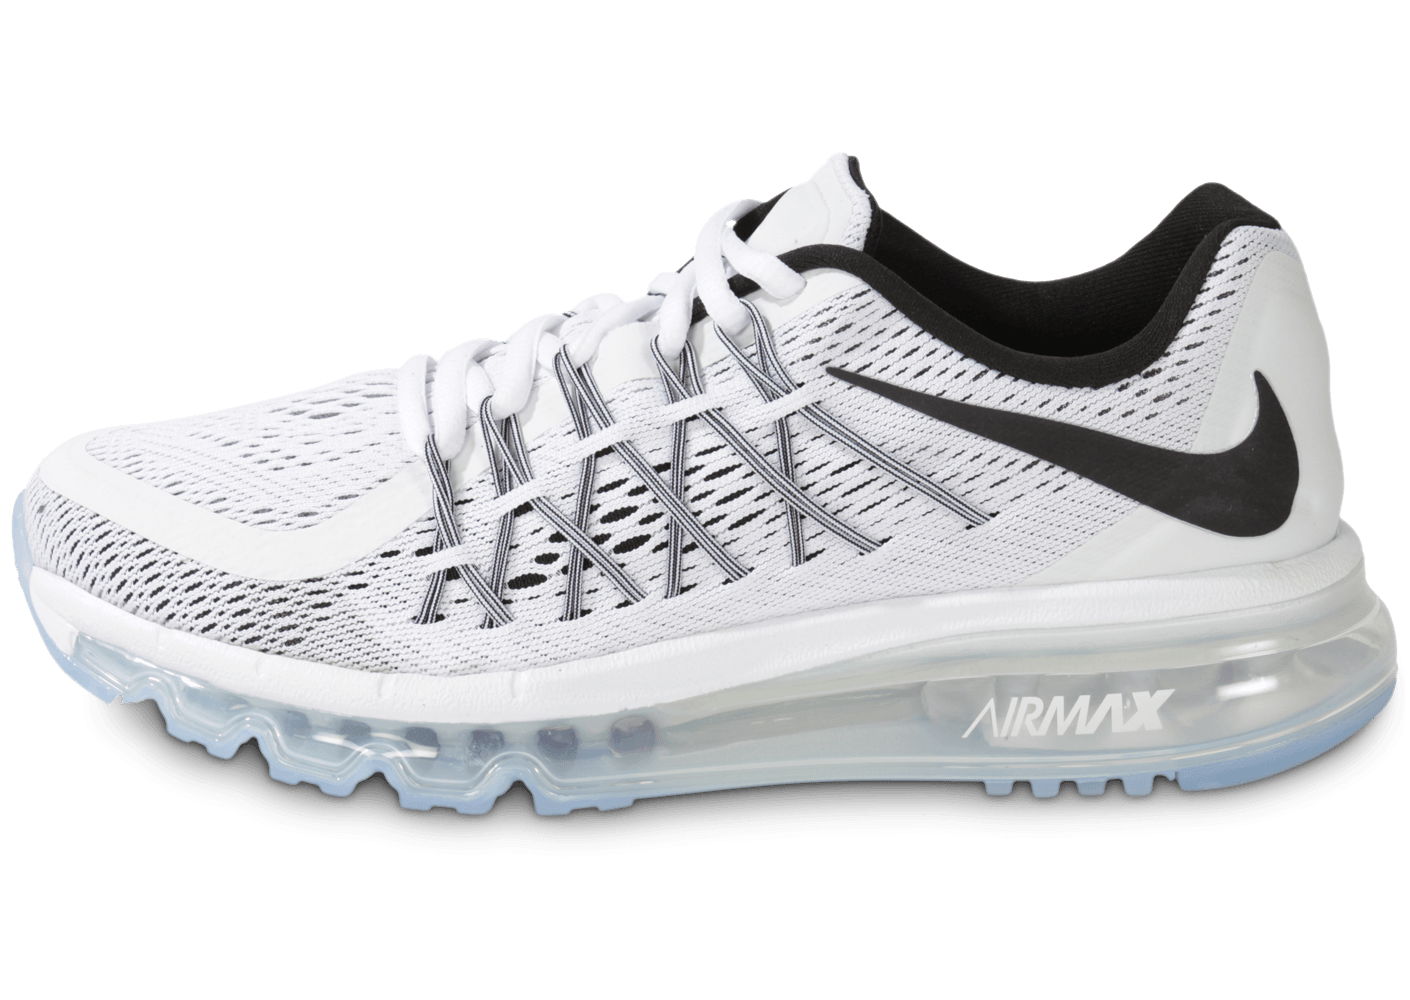 Nike Air Max 2015 Gs Blanche Et Noire - Chaussures Chaussures - Chausport